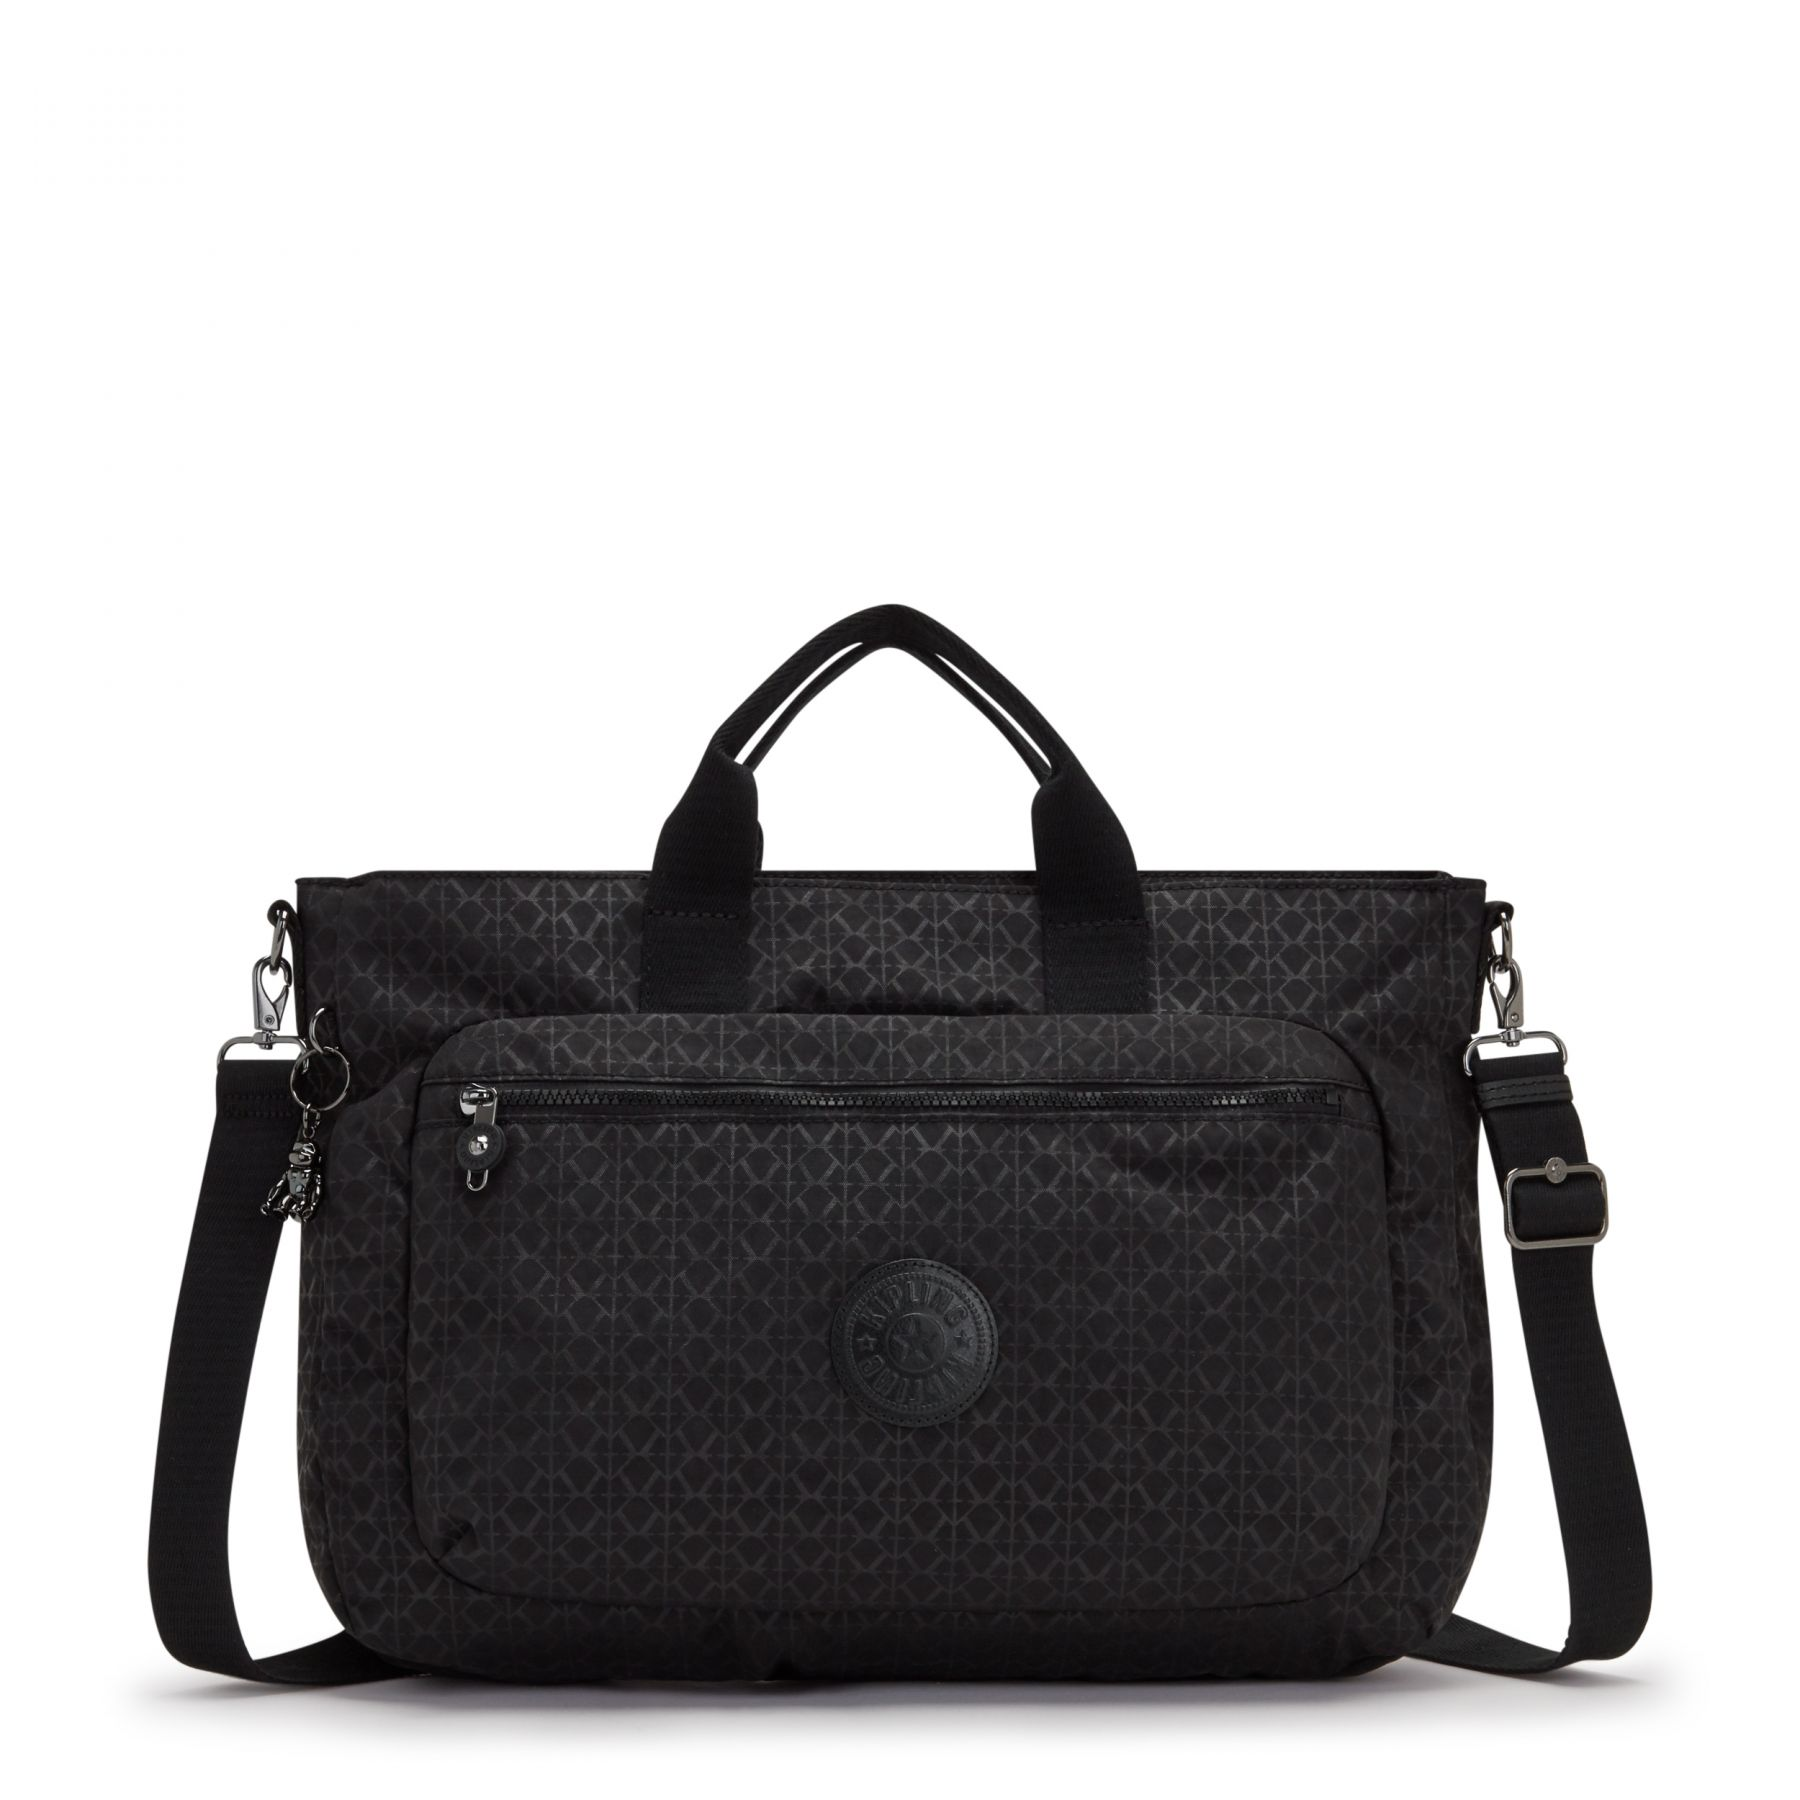 MIHO M BAGS by Kipling - Front view